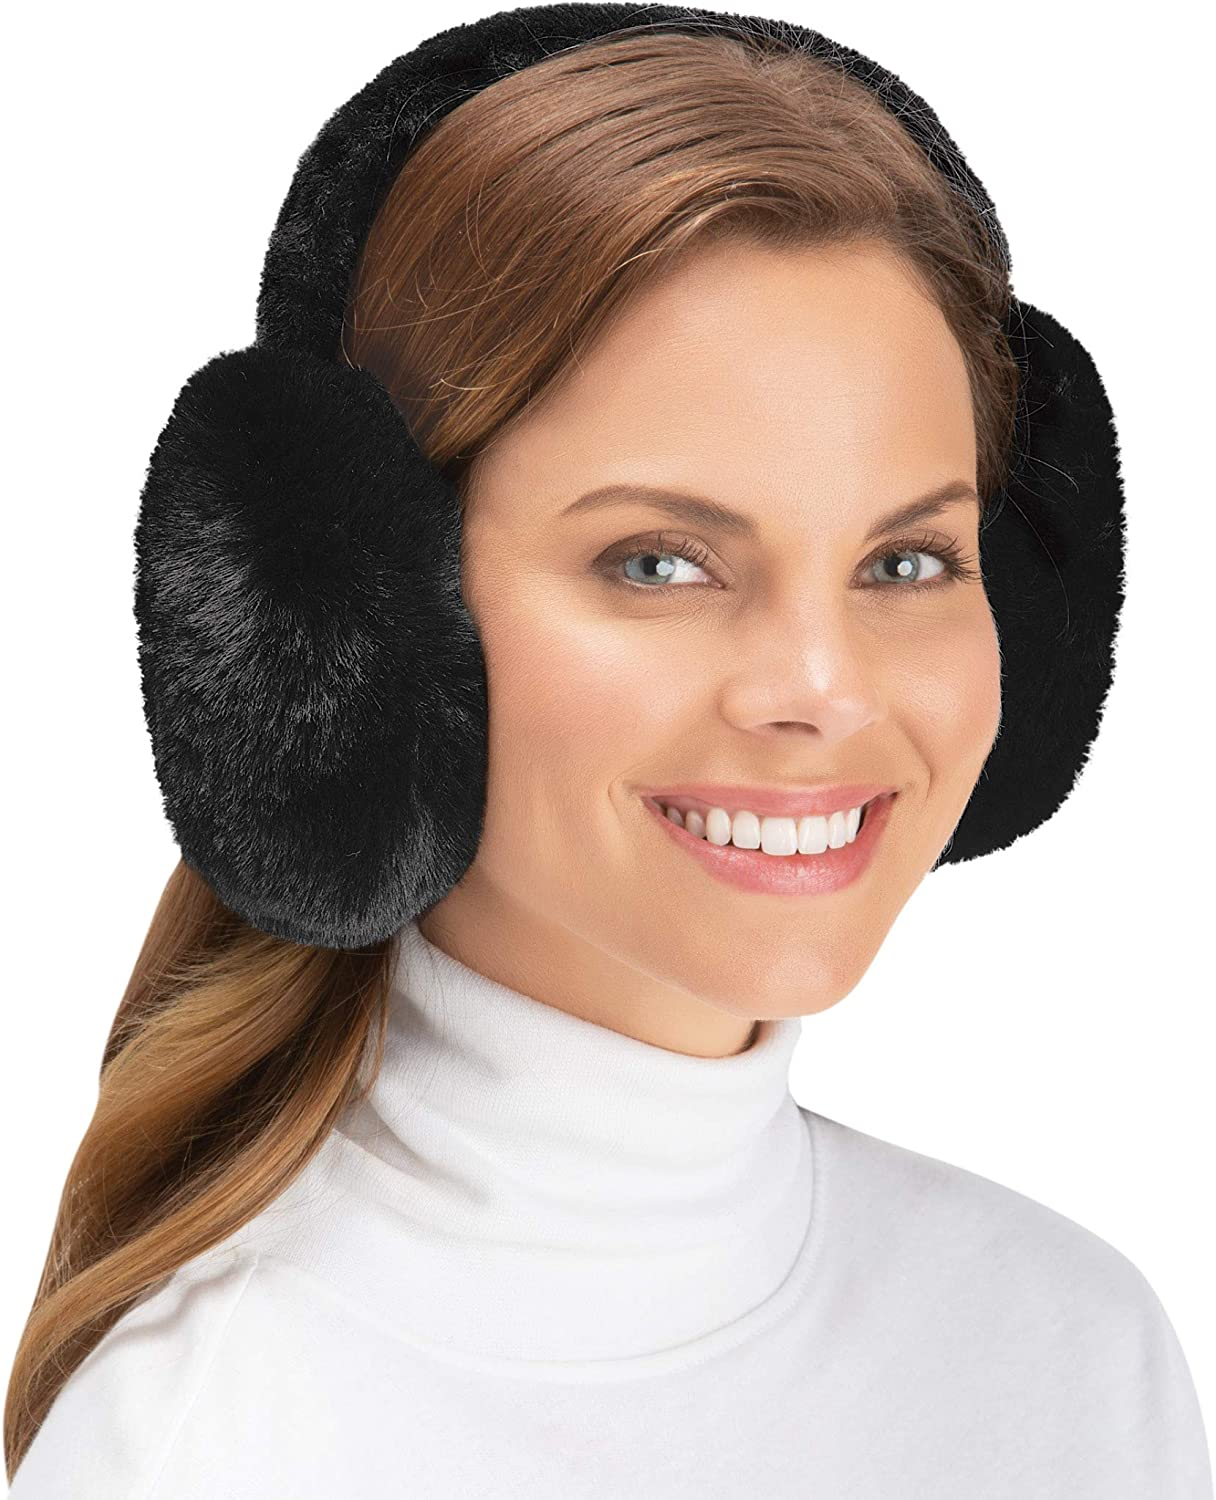 Plush Faux Inventory cleanup selling sale Fur Ear Muffs - Essentials Cozy Winter Regular store